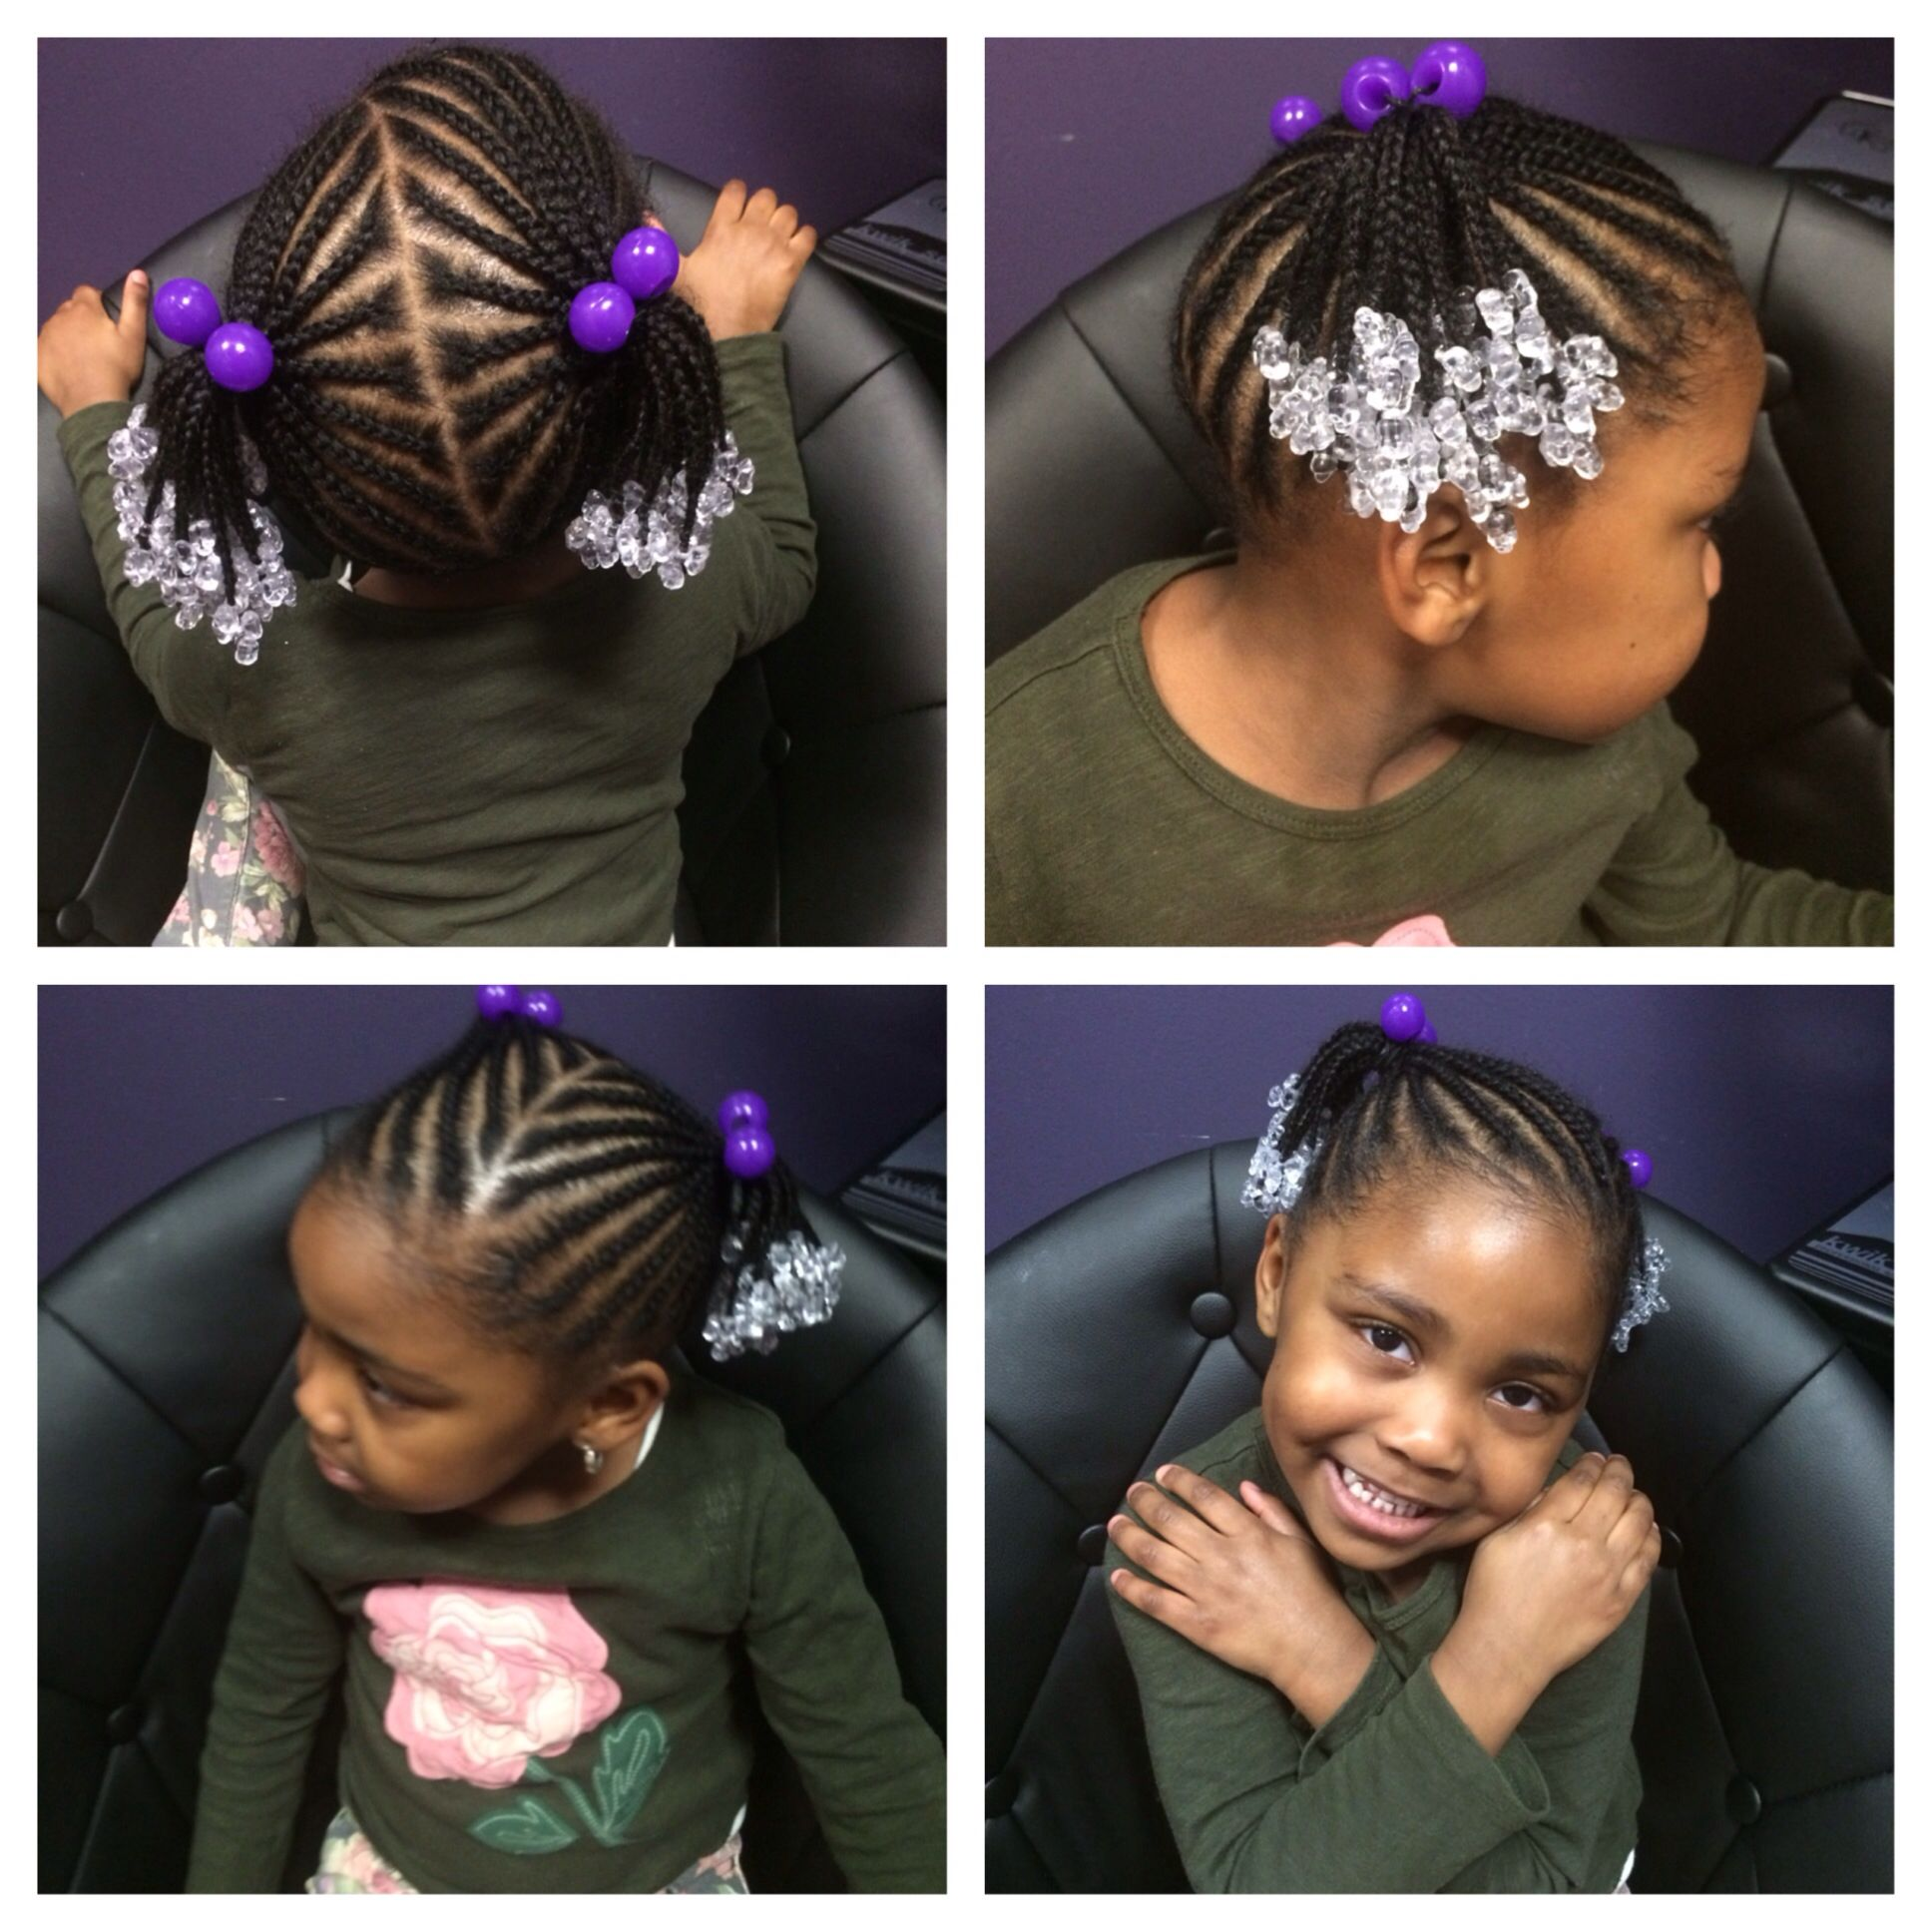 two braided pigtails and beads 13600 baltimore av suite 126 laurel